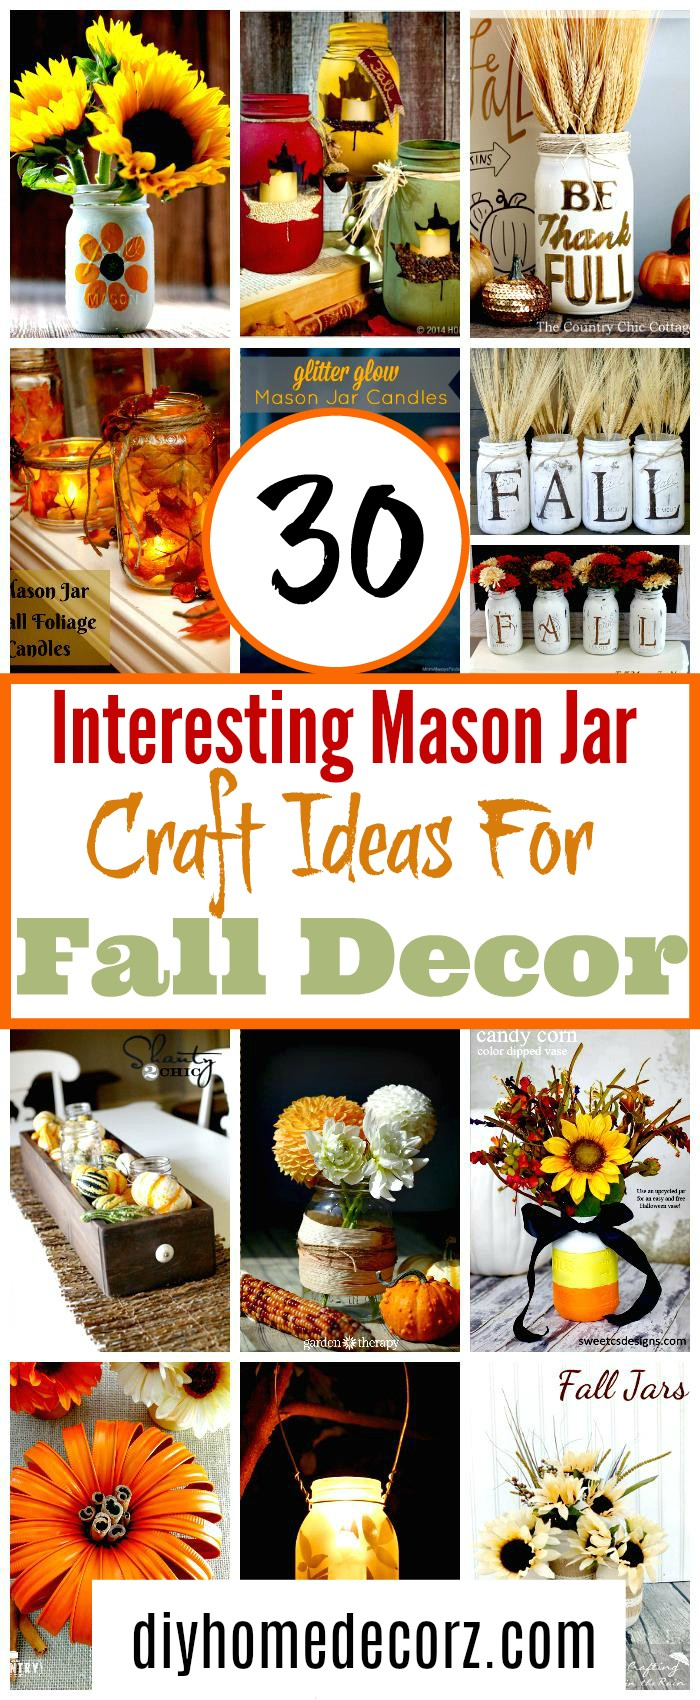 30 Interesting Mason Jar Craft Ideas For Fall Decor 30 Interesting Mason jar craft ideas for fall décor